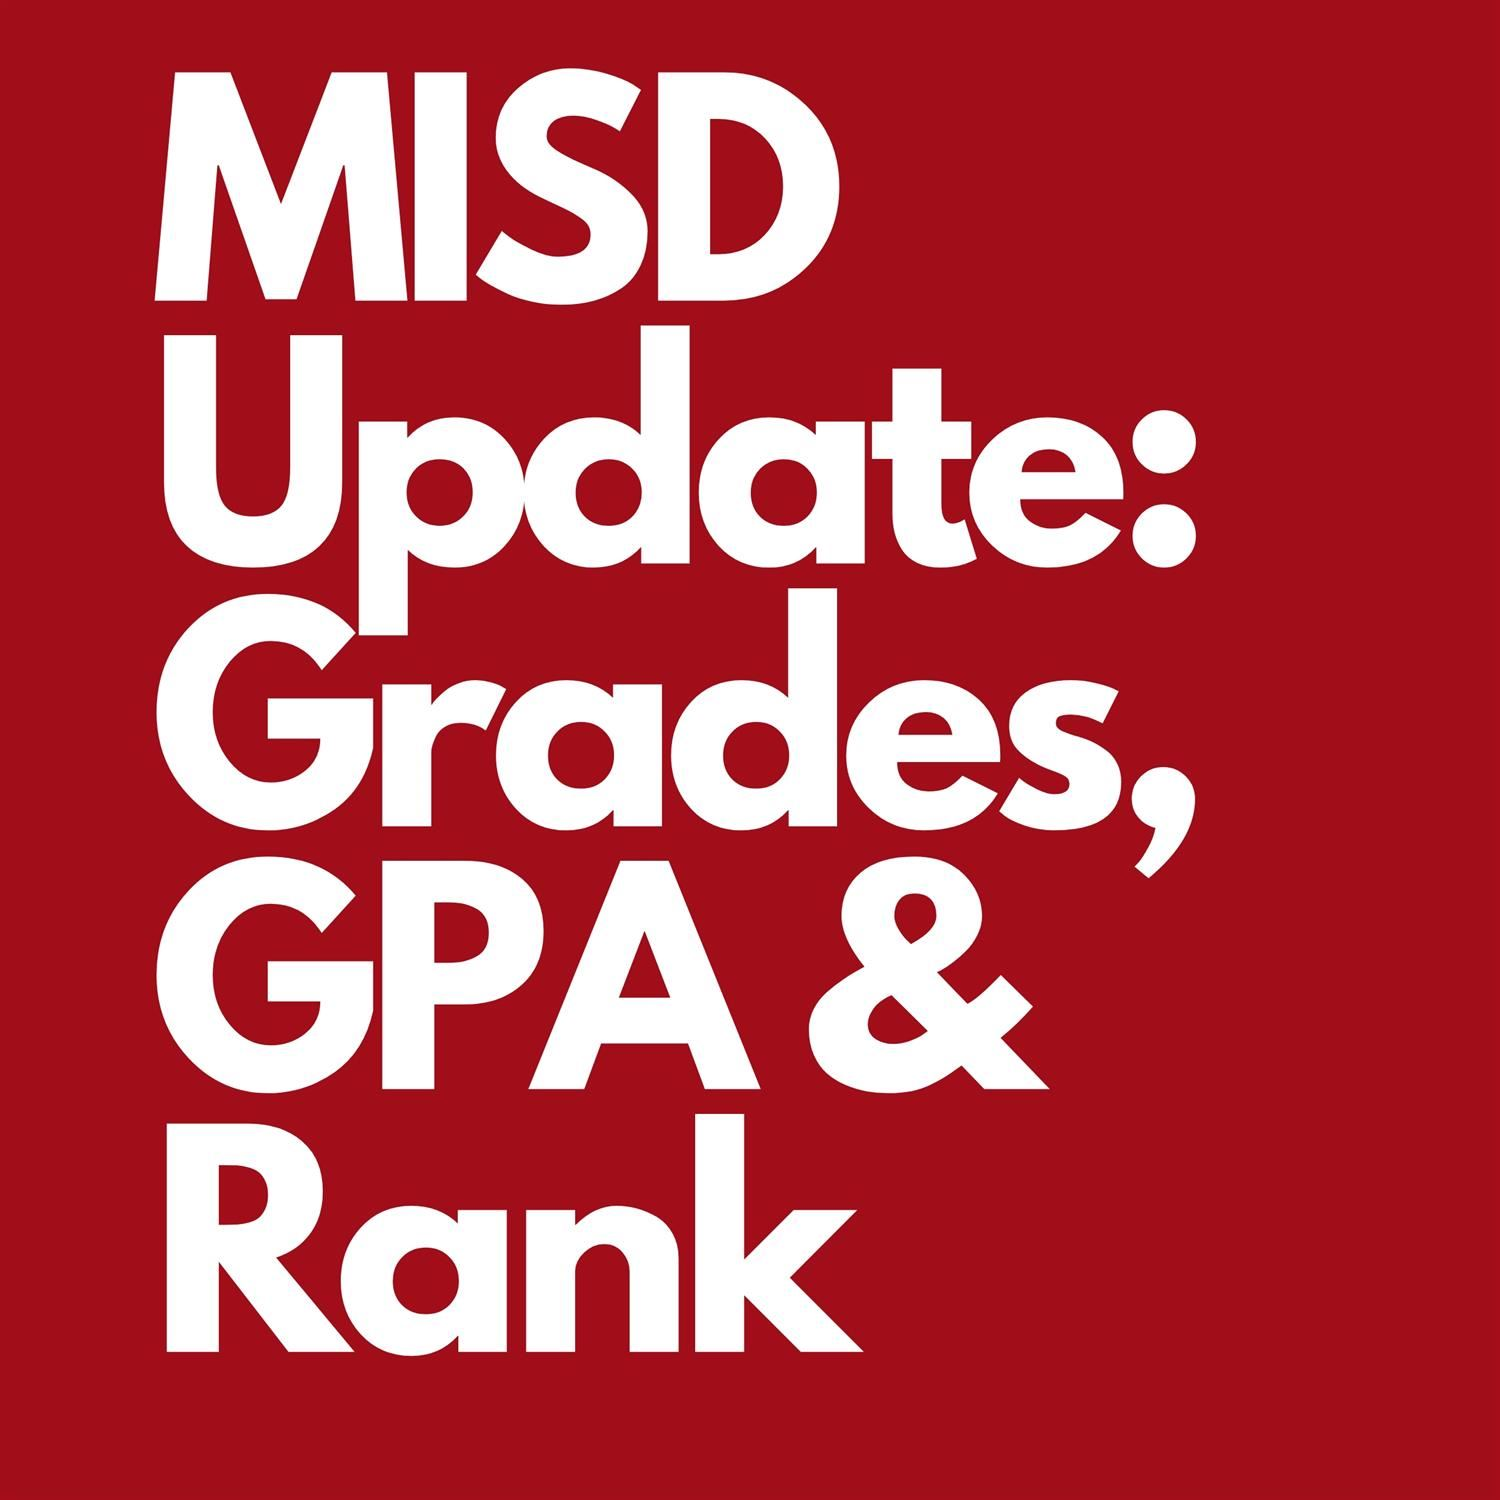 MISD Update: Grades, GPA and Rank